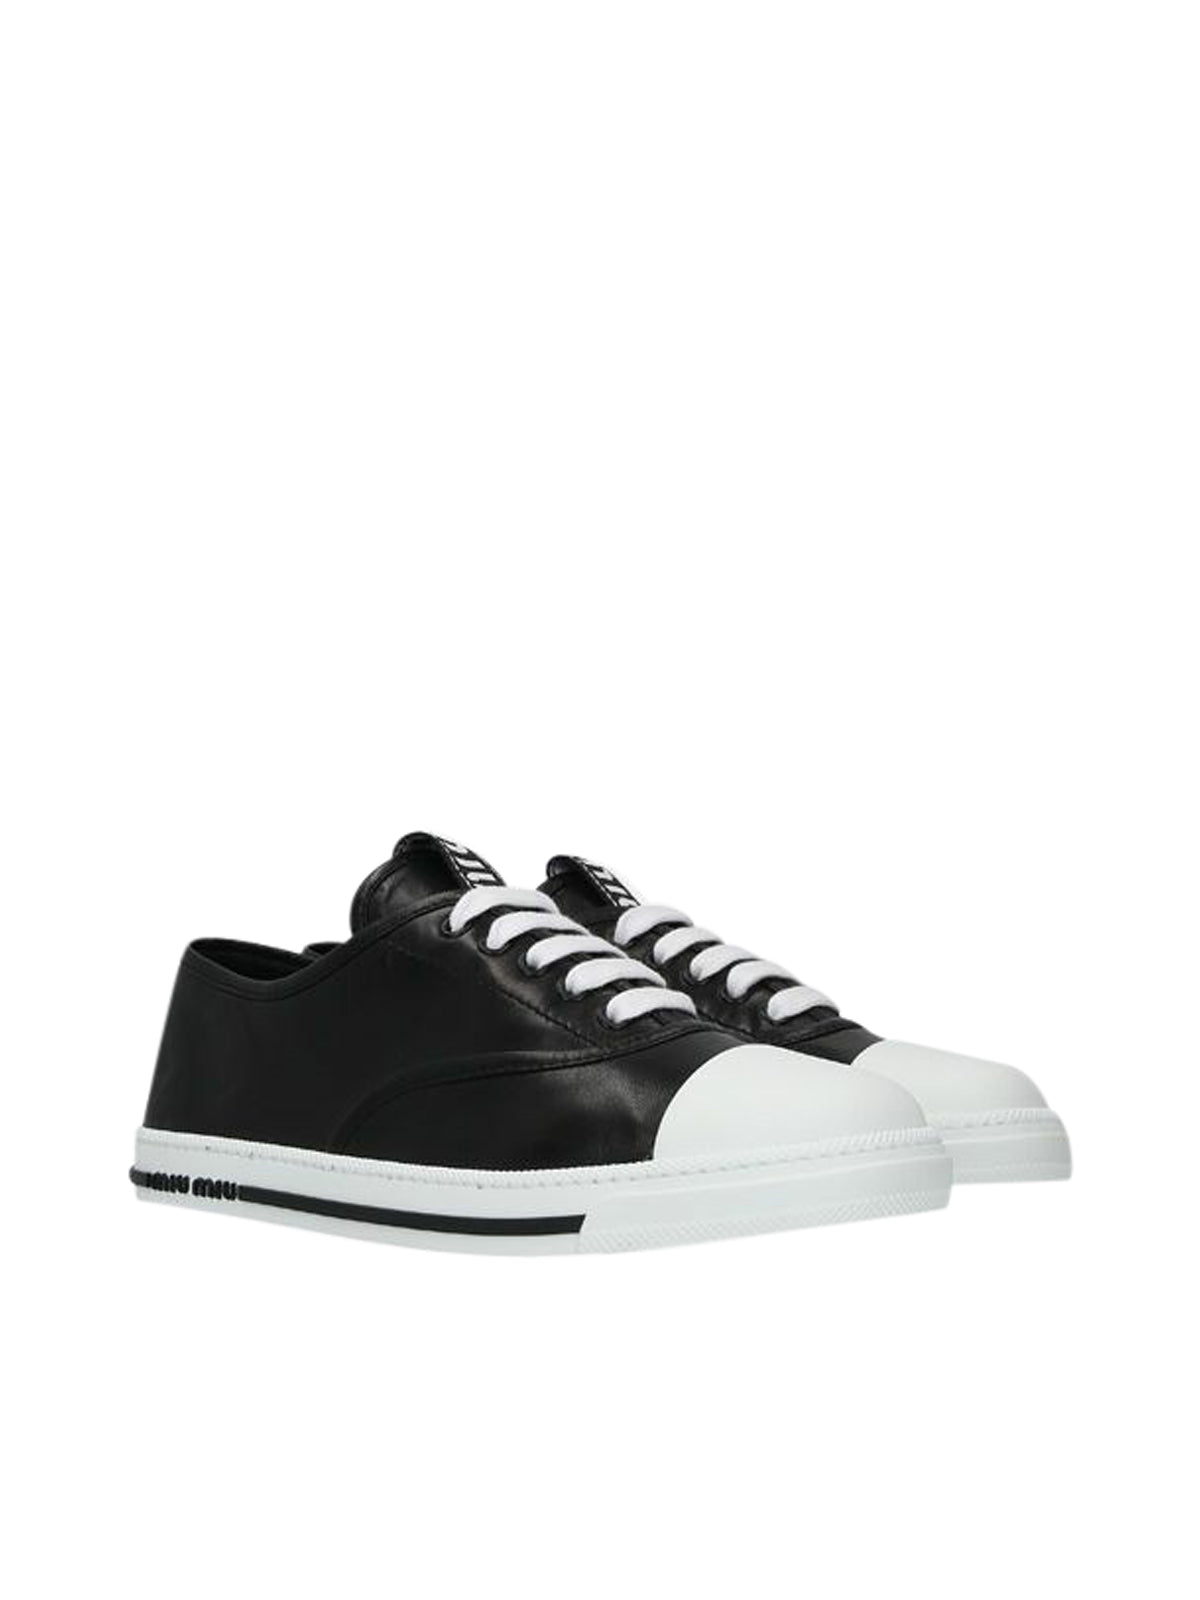 nappa leather lace-up sneakers